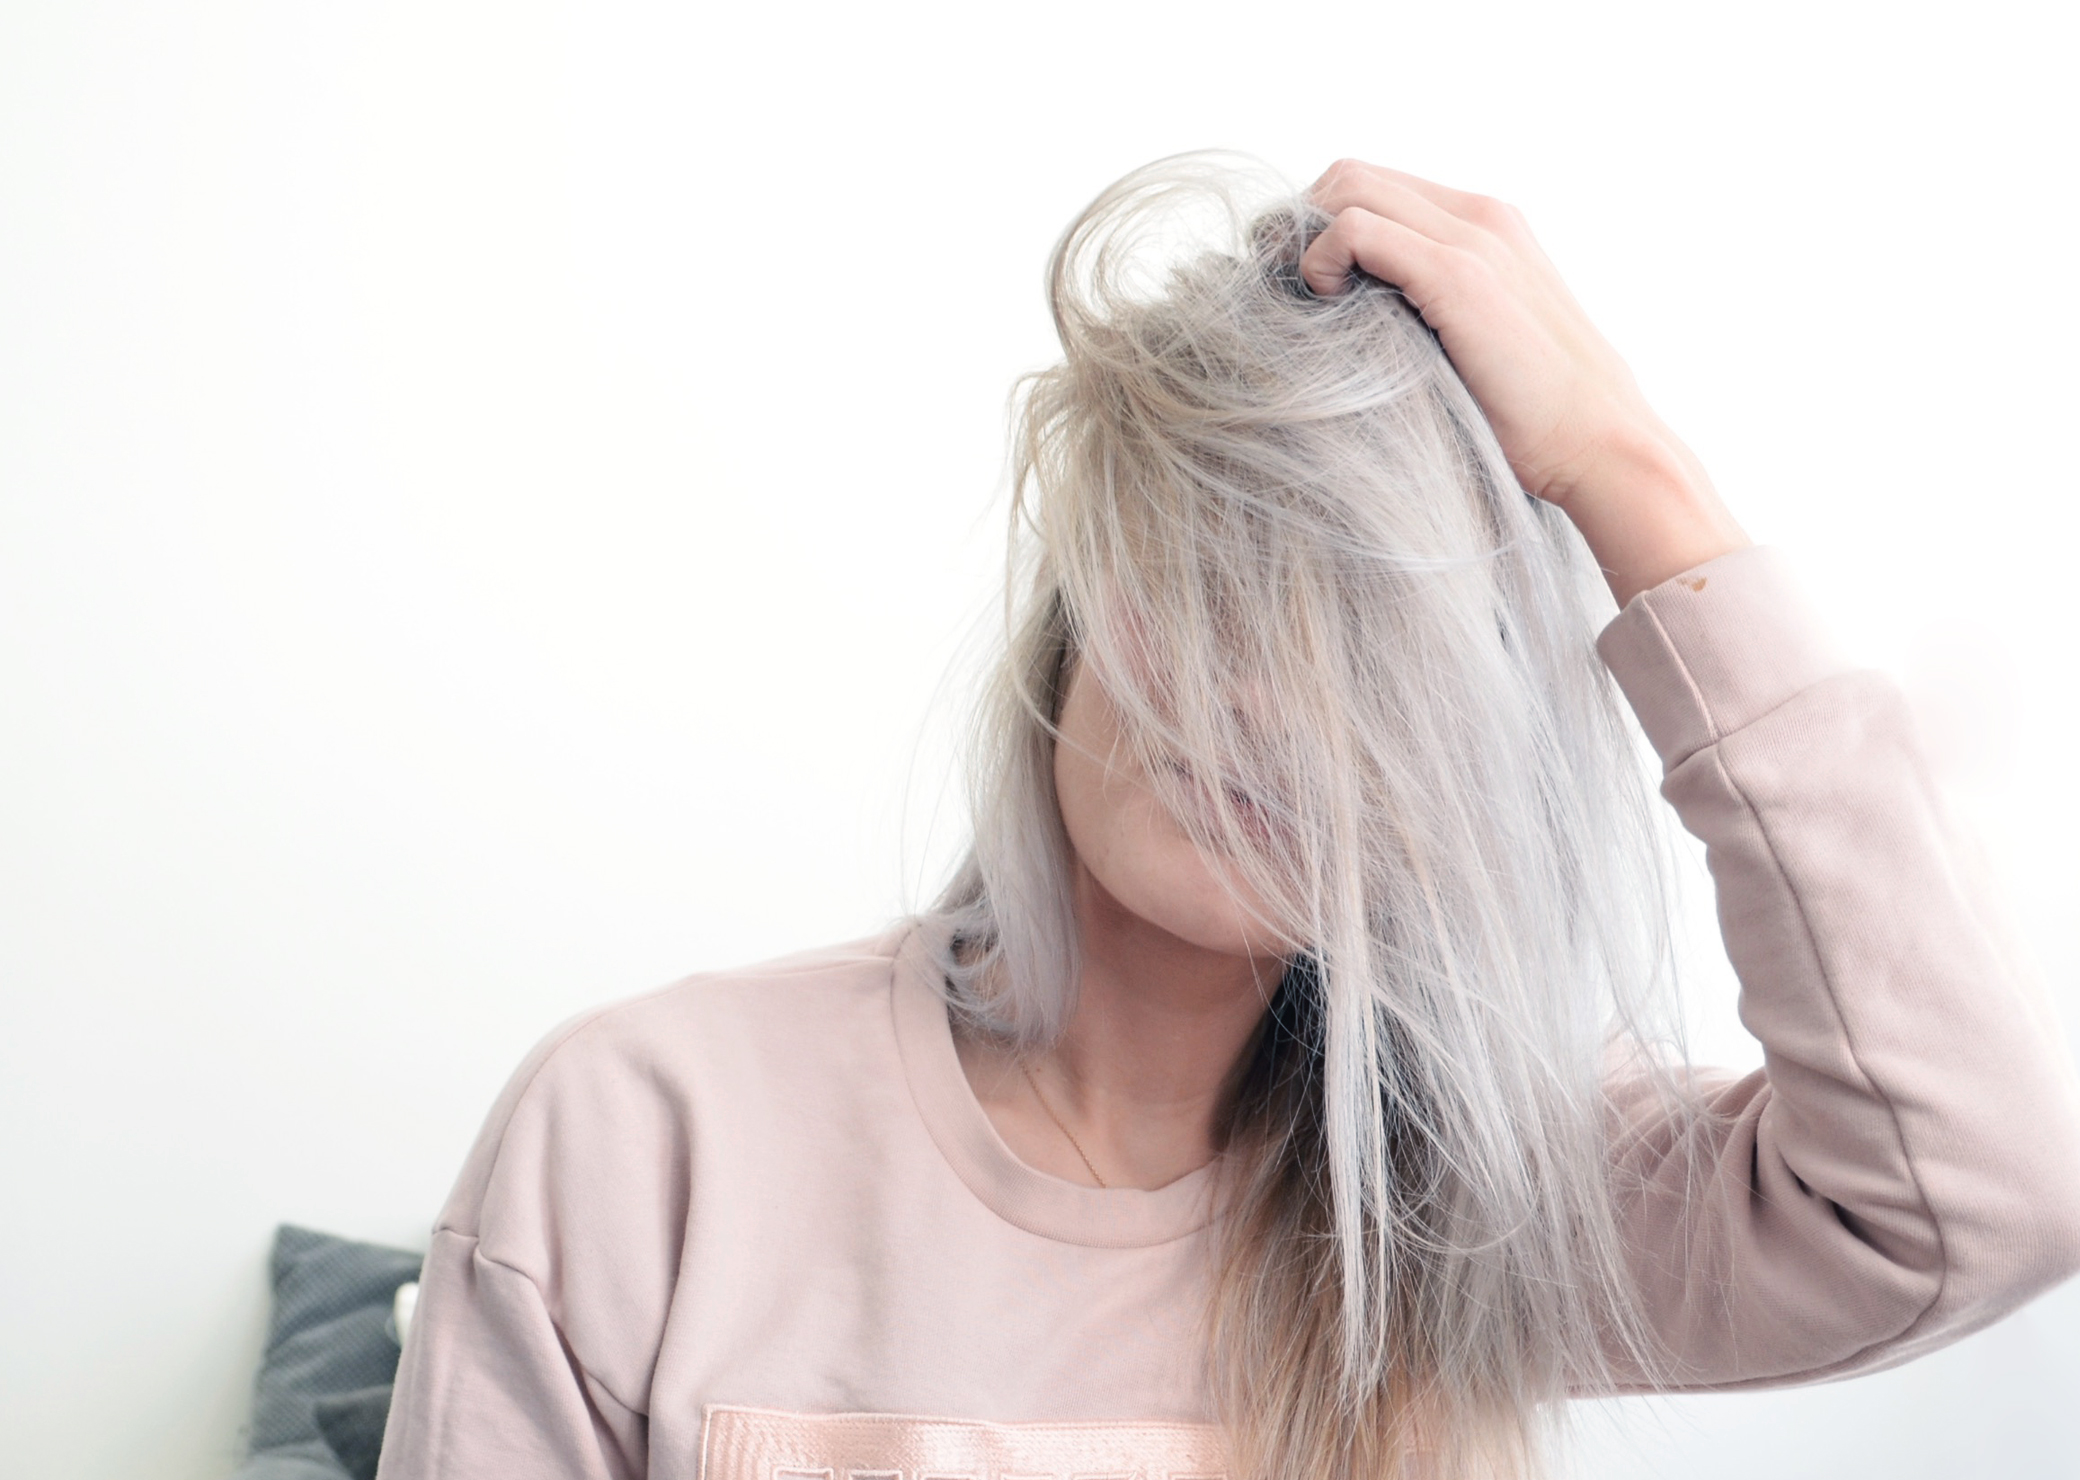 How to get grey hair? From blonde to silver grey!